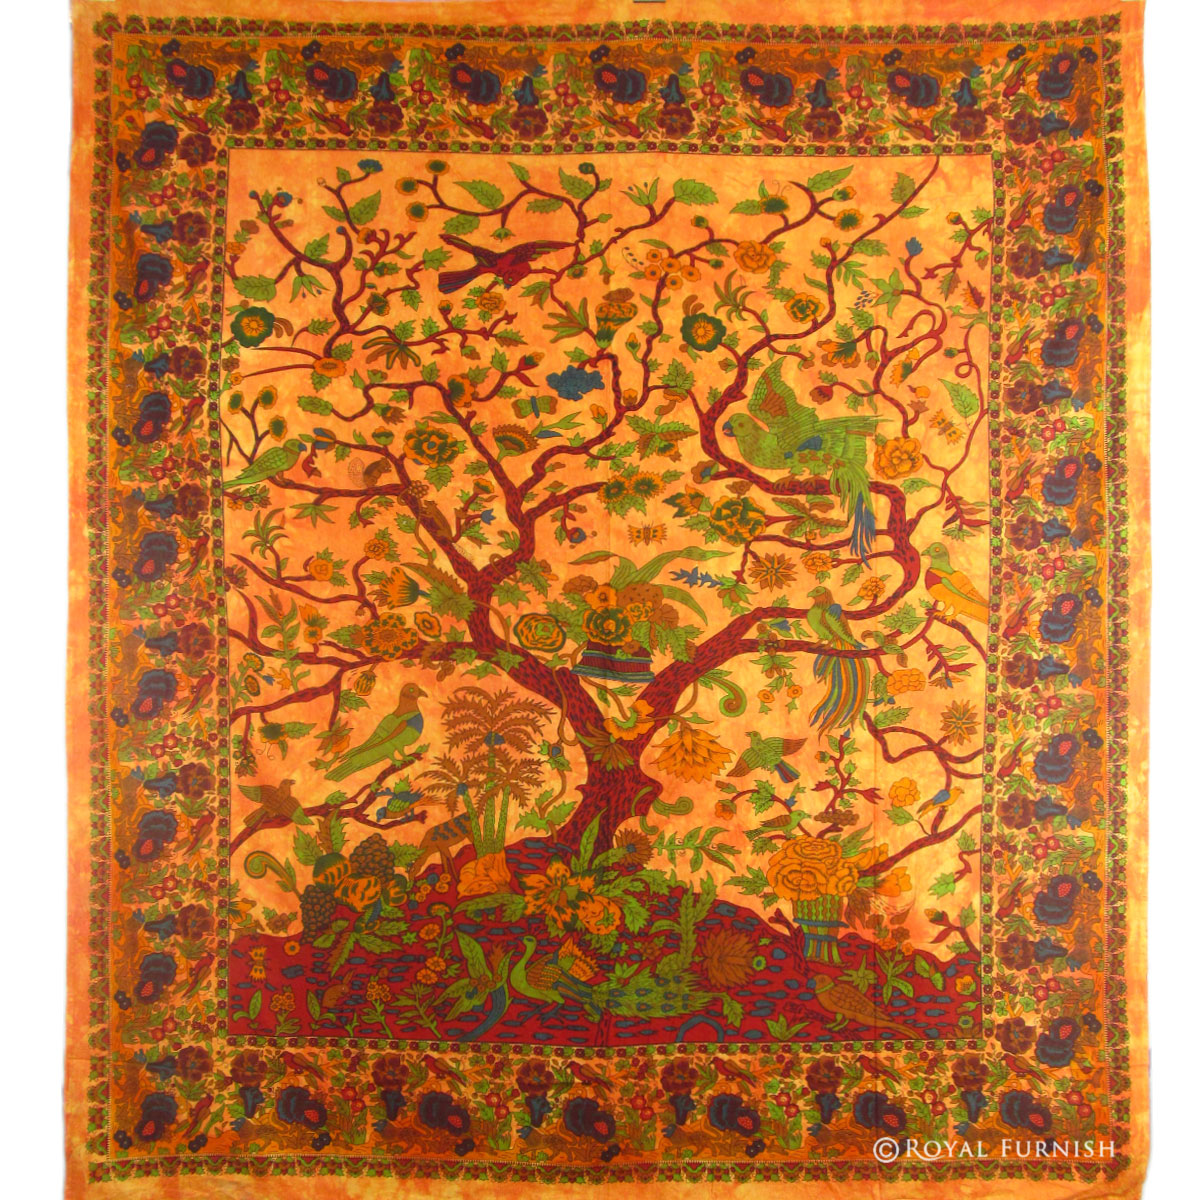 Orange Indian Dorm Decor Tree Of Life Wall Hanging ...